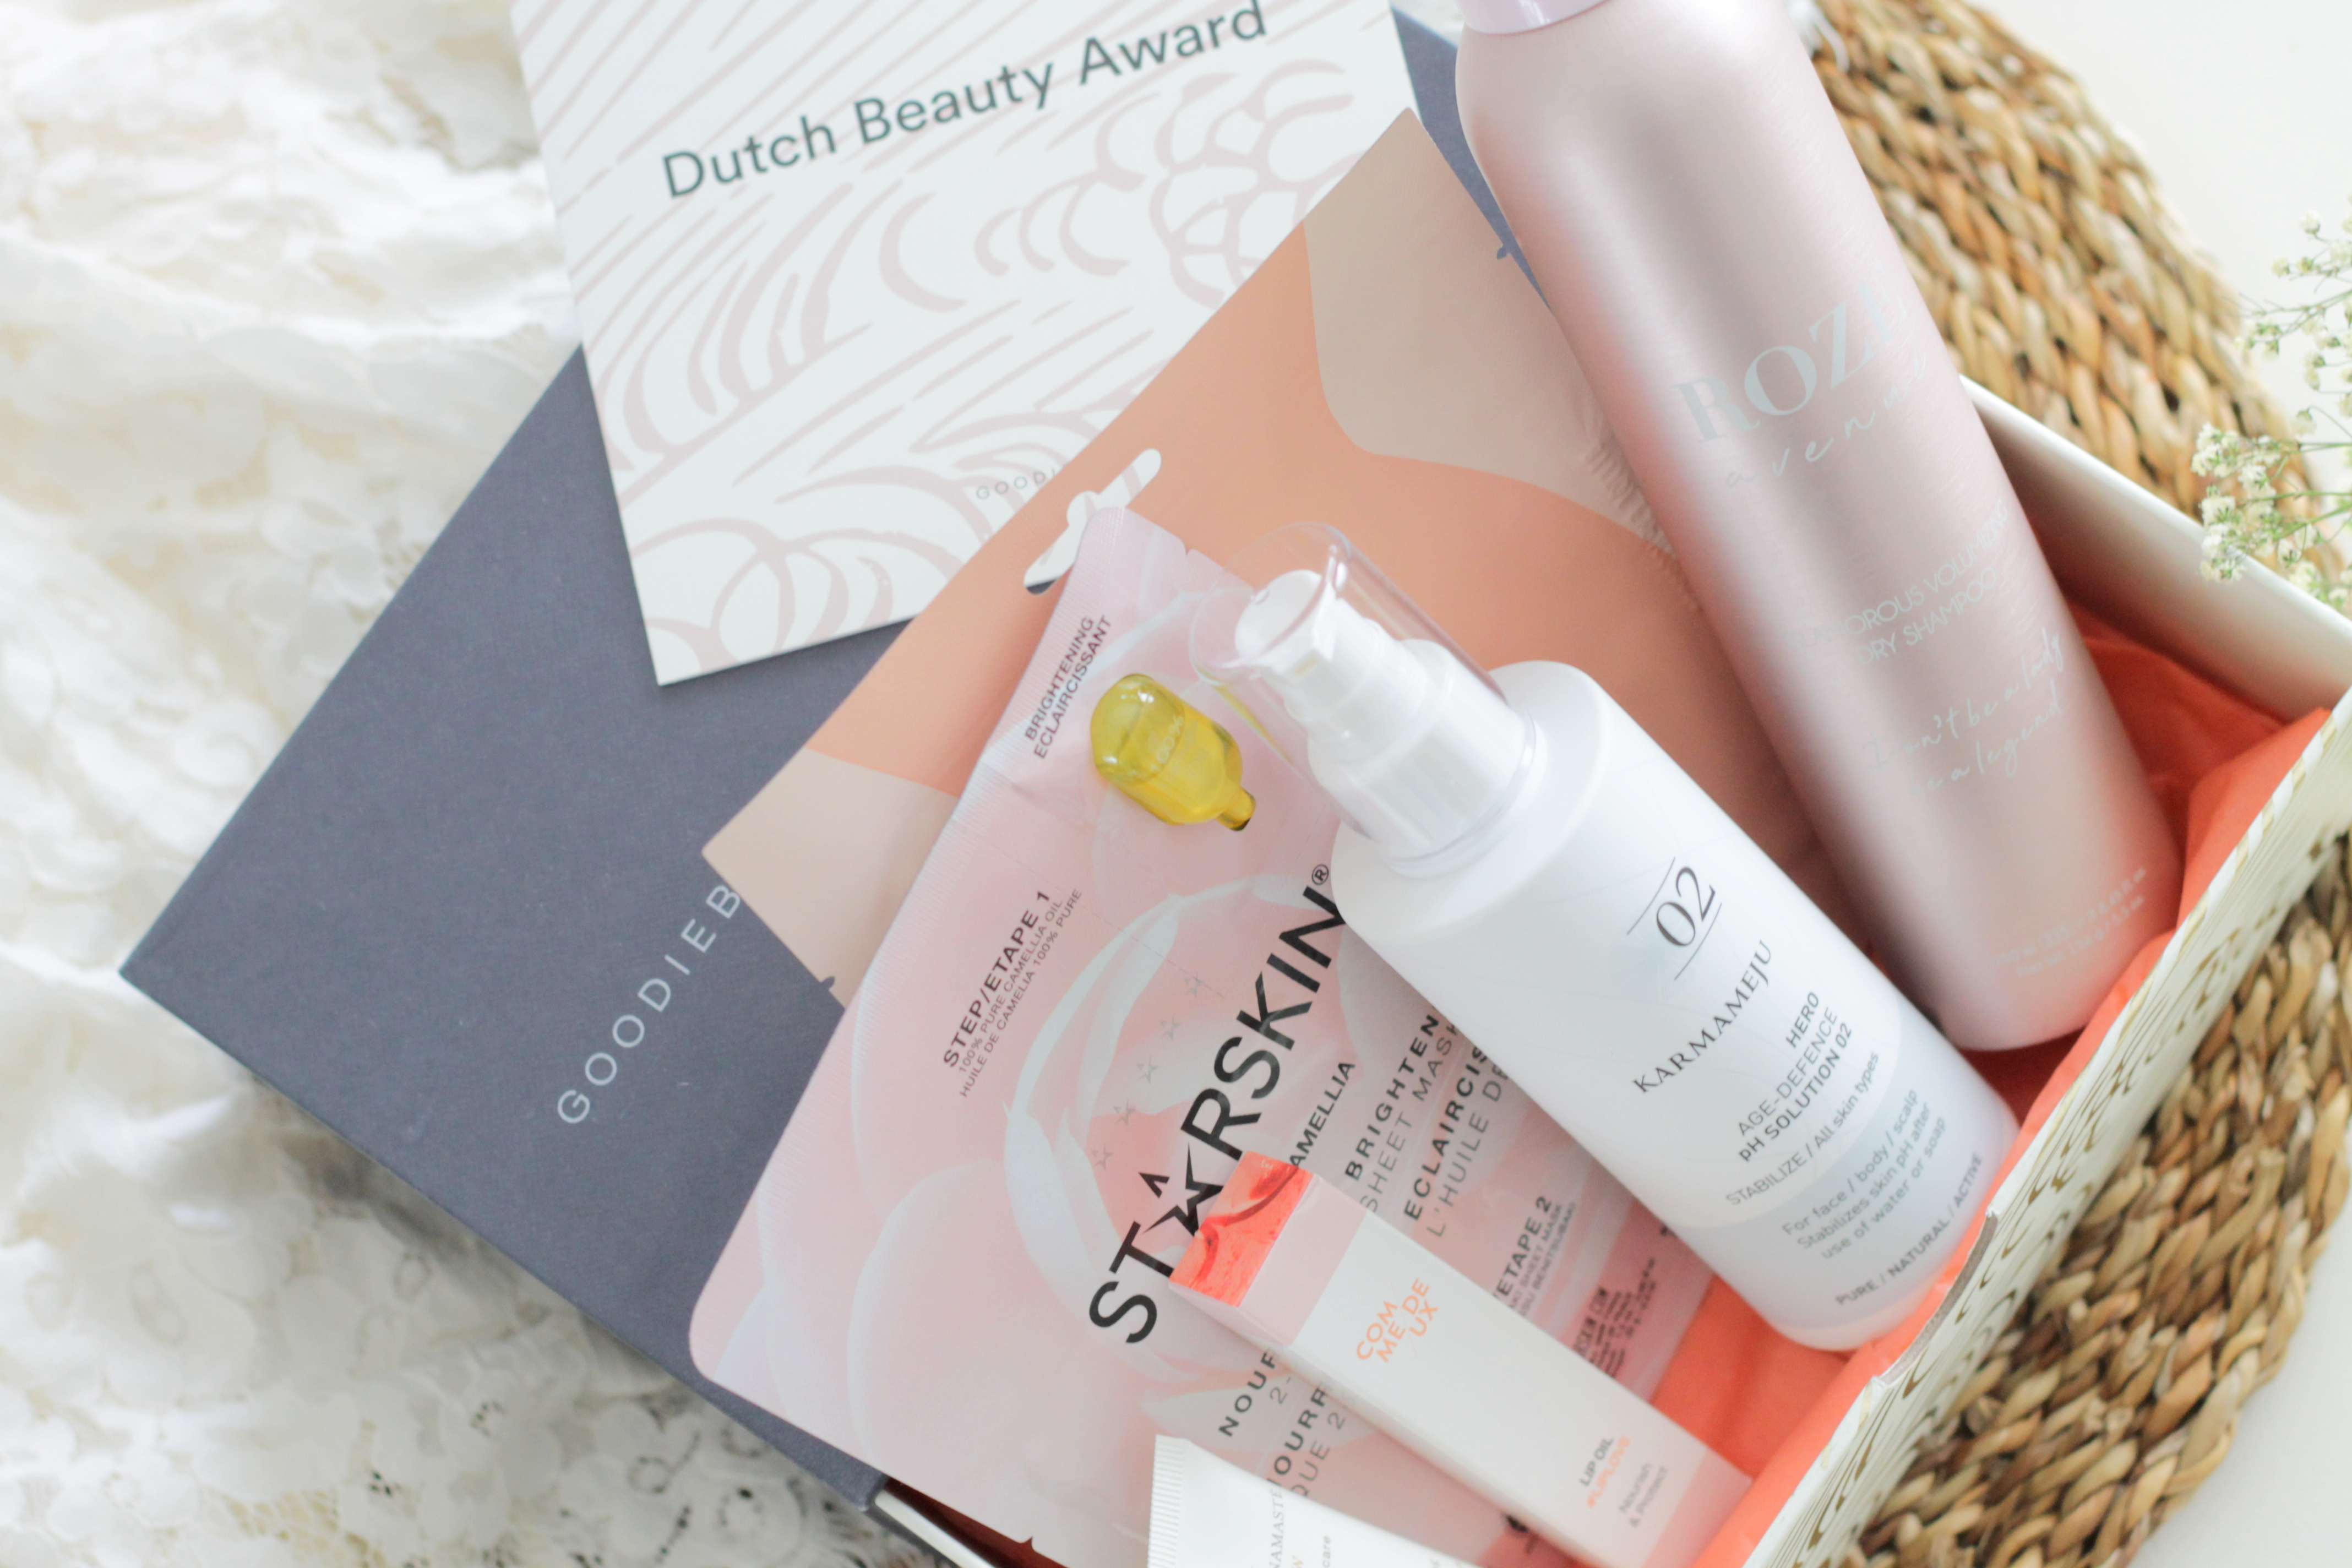 GOODIEBOX Dutch Beauty Award